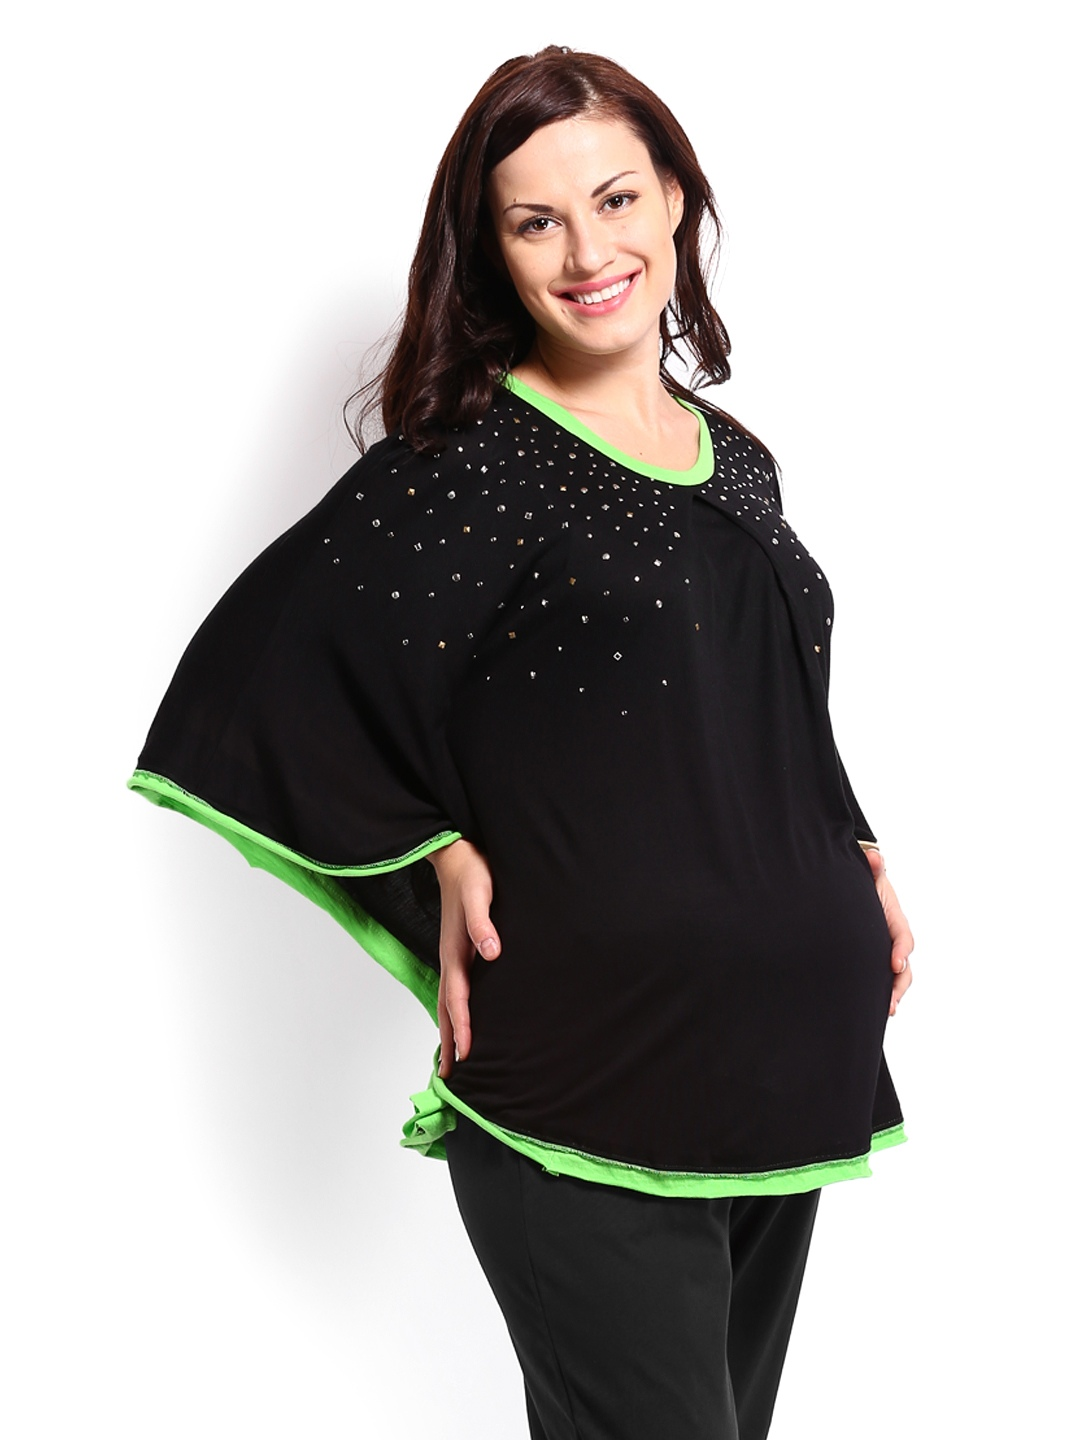 Our maternity scrub tops and pants stretch with you throughout your pregnancy for the all-day comfort and versatility you demand and need. Our great-fitting maternity scrubs keep you looking professional with a beautiful fit, while providing the flexibility and durability you require to perform at your best.